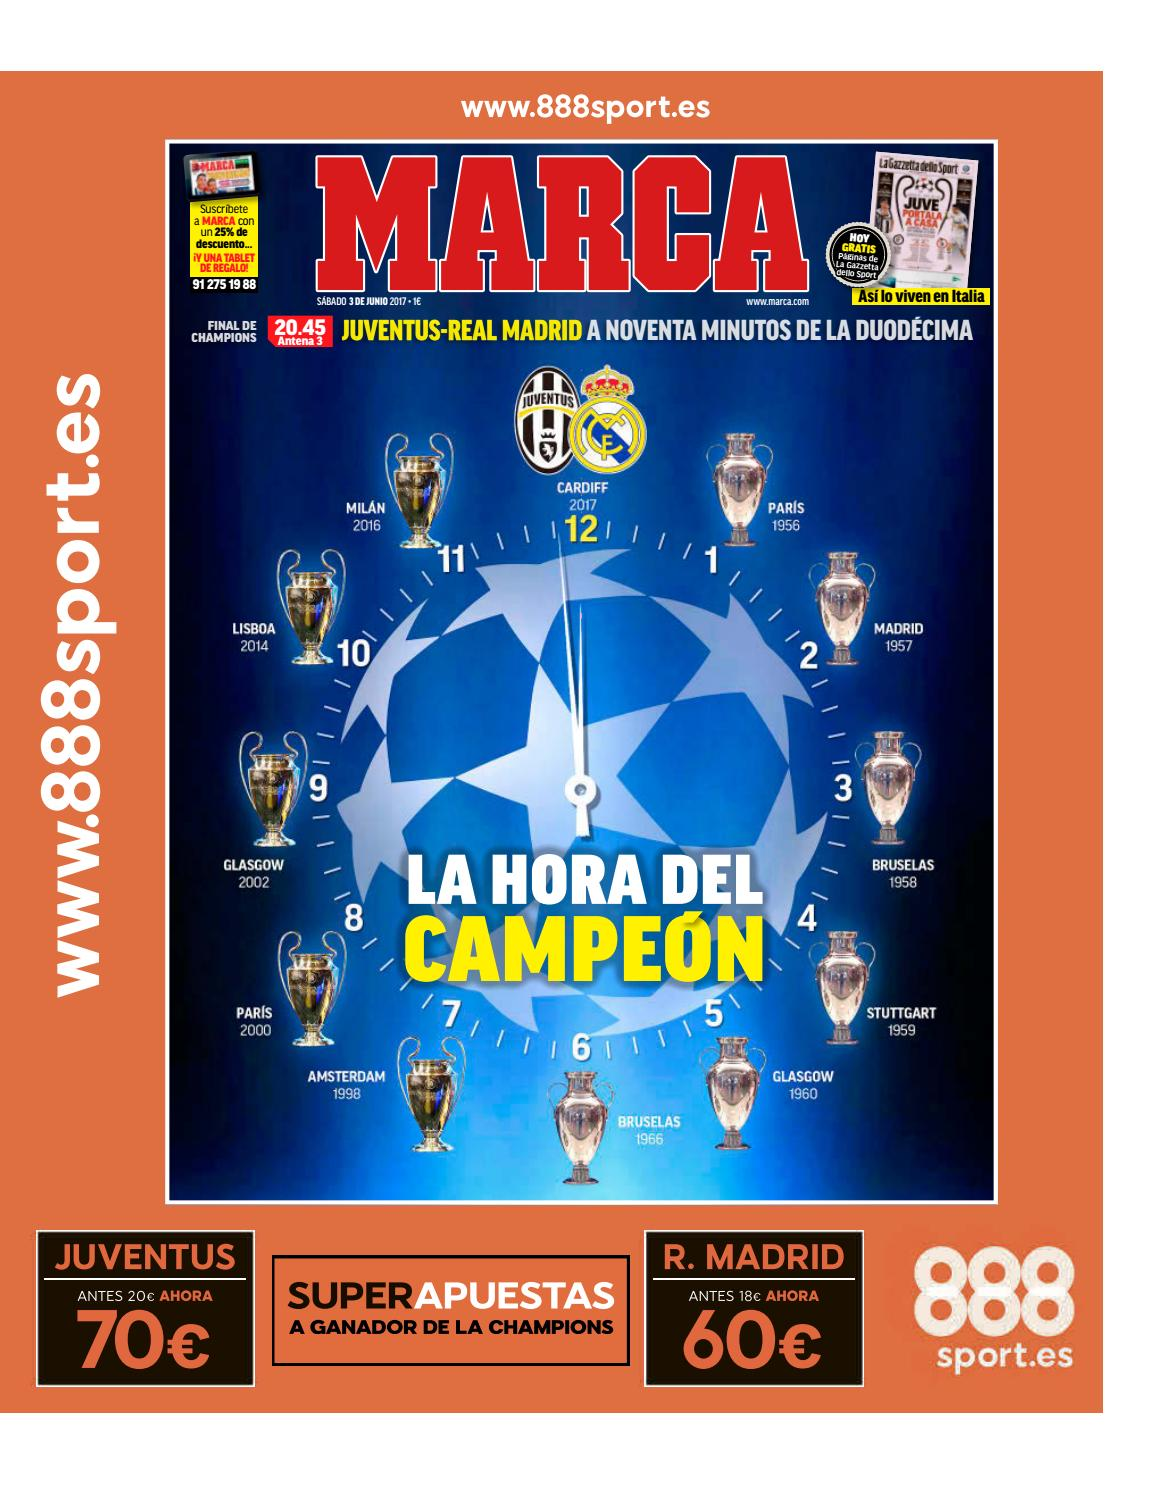 Marca0306 by Juan Carlos Matos Costa - issuu 39b338d1f04c6